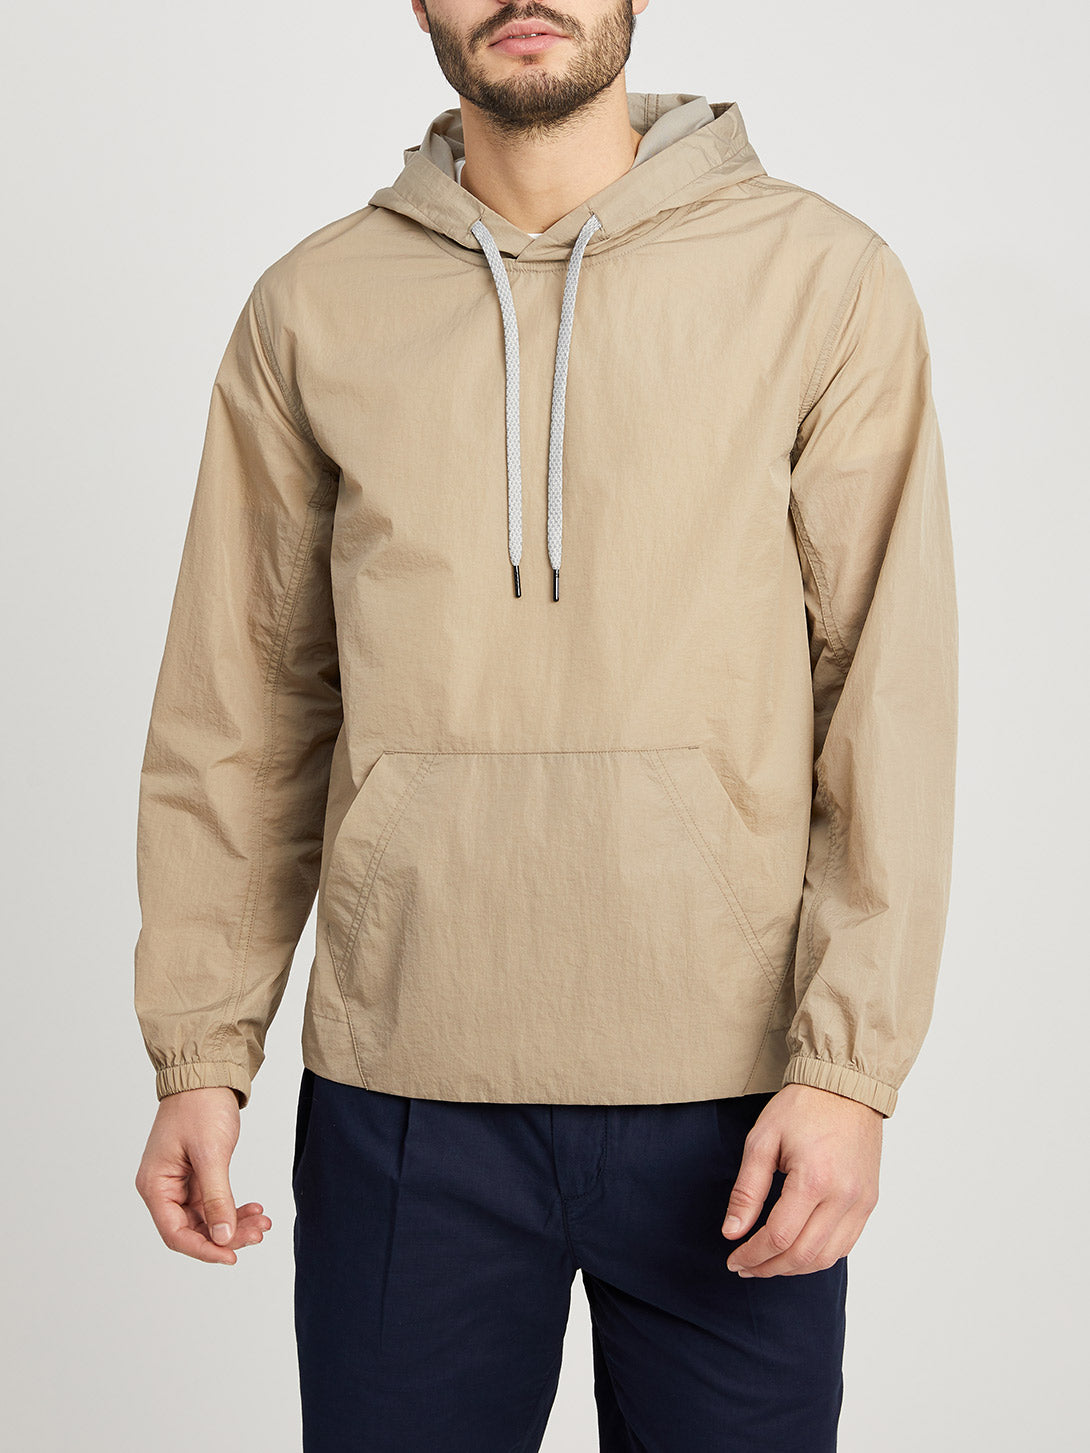 KHAKI jackets for men cayden anorak ons clothing